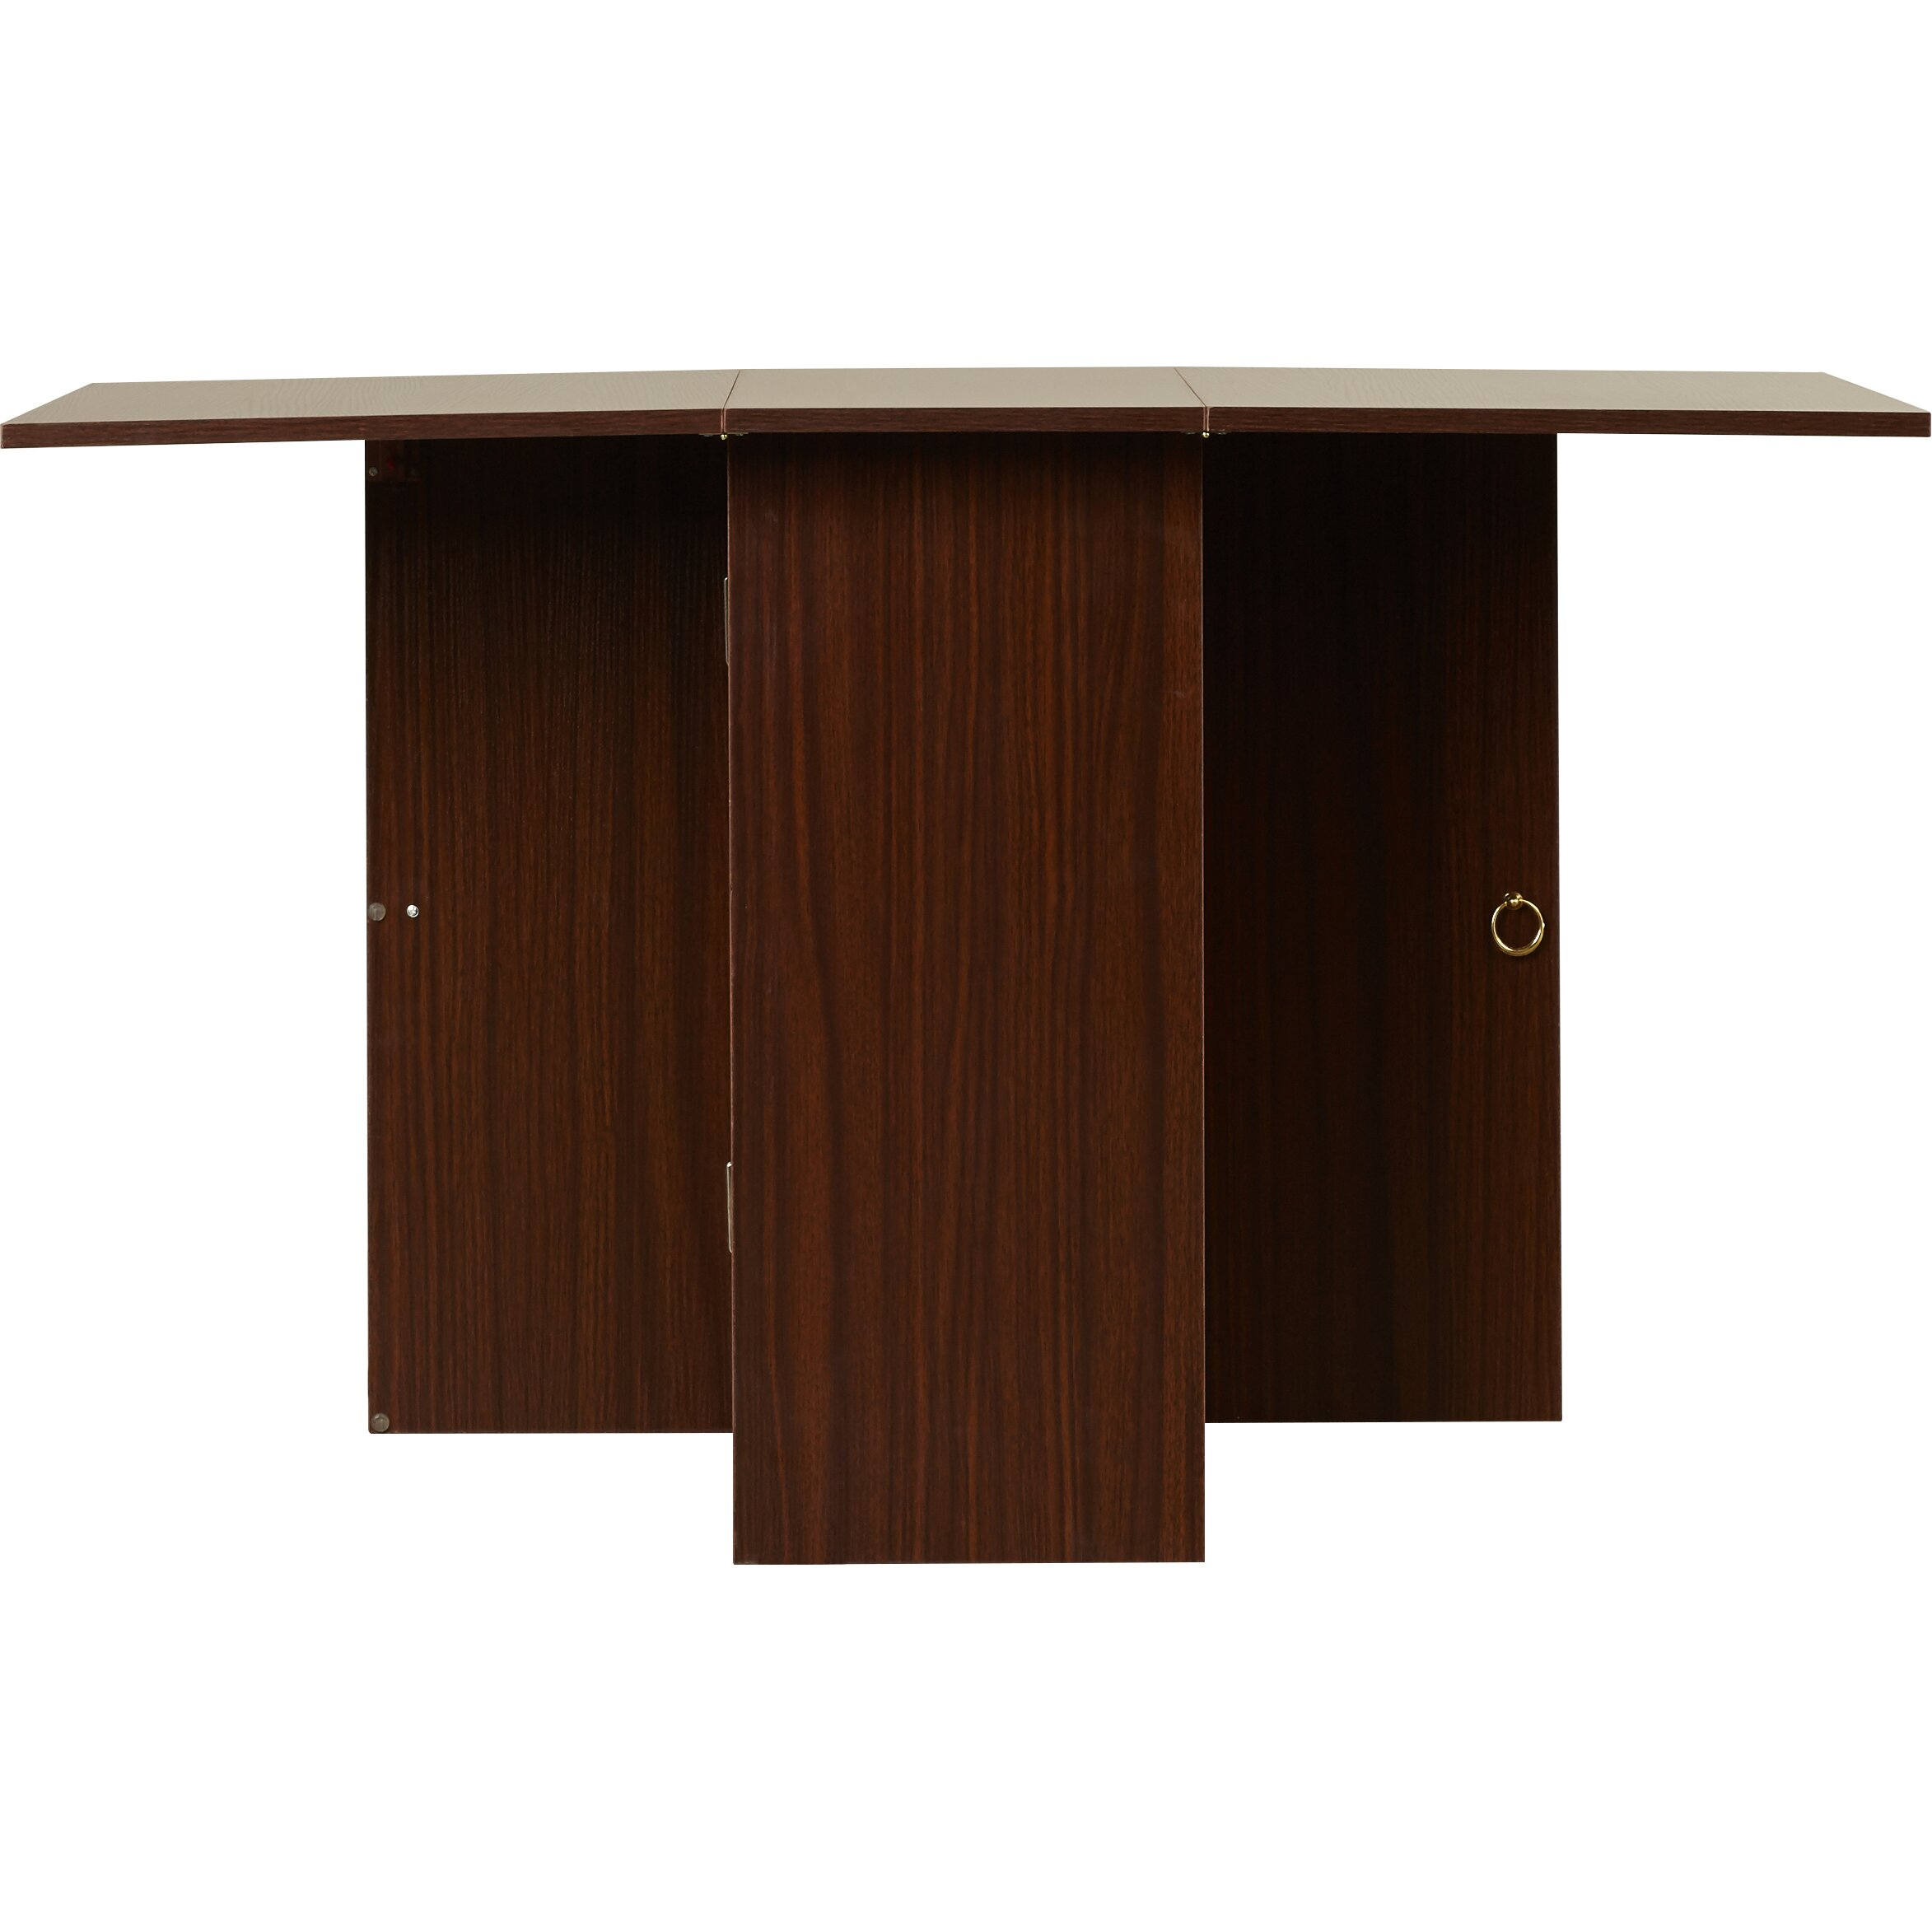 Zipcode Design Natalie Extendable Dining Table amp Reviews  : Zipcode25E2258425A2 Design Natalie Extendable Dining Table from www.wayfairsupply.com size 2346 x 2346 jpeg 386kB